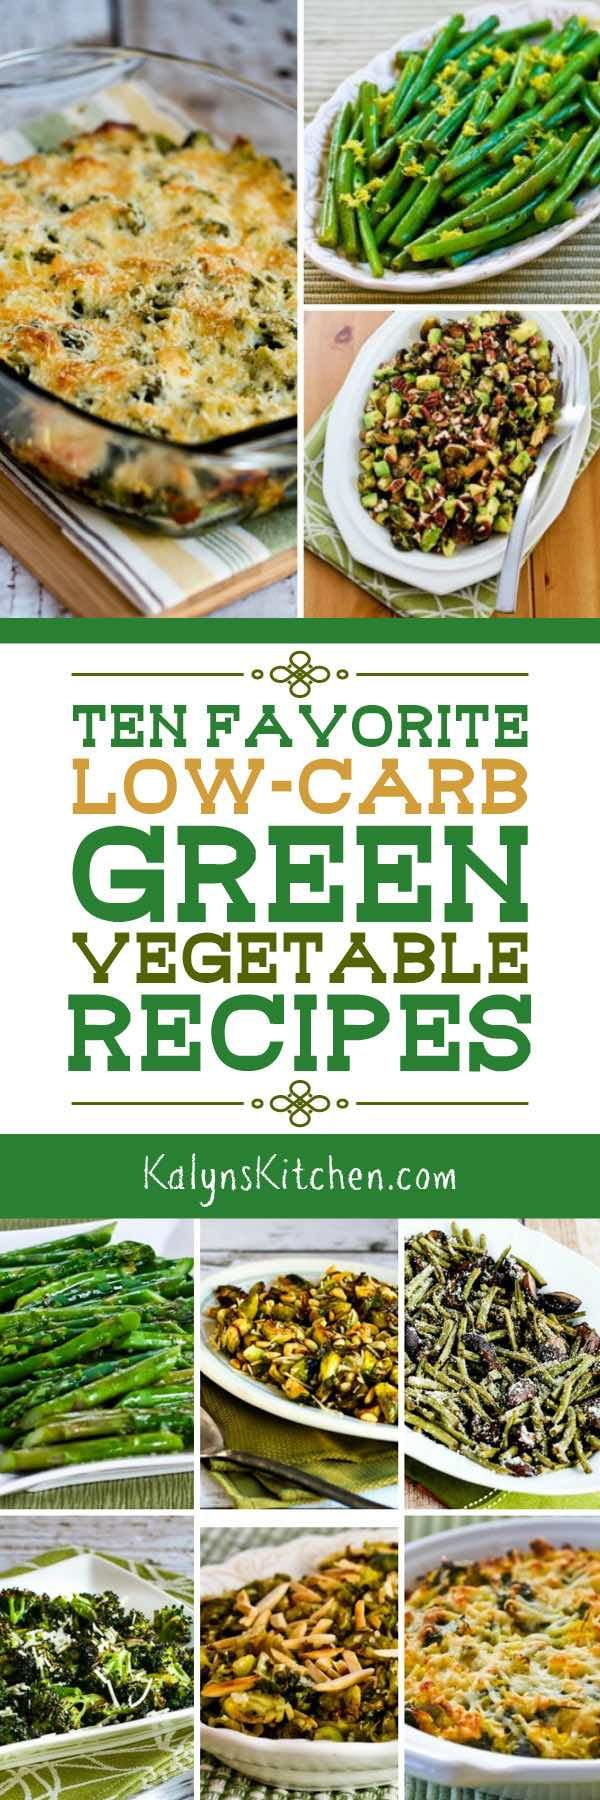 When you're making a special holiday meal, it's nice to have some green vegetables to balance out the rich foods, and here are Ten Favorite Low-Carb Green Vegetable Recipes that are great for a holiday meal or special dinner! [found on KalynsKitchen.com] #GreenVegetables #LowCarbGreen Vegetables #HolidayGreenVegetables